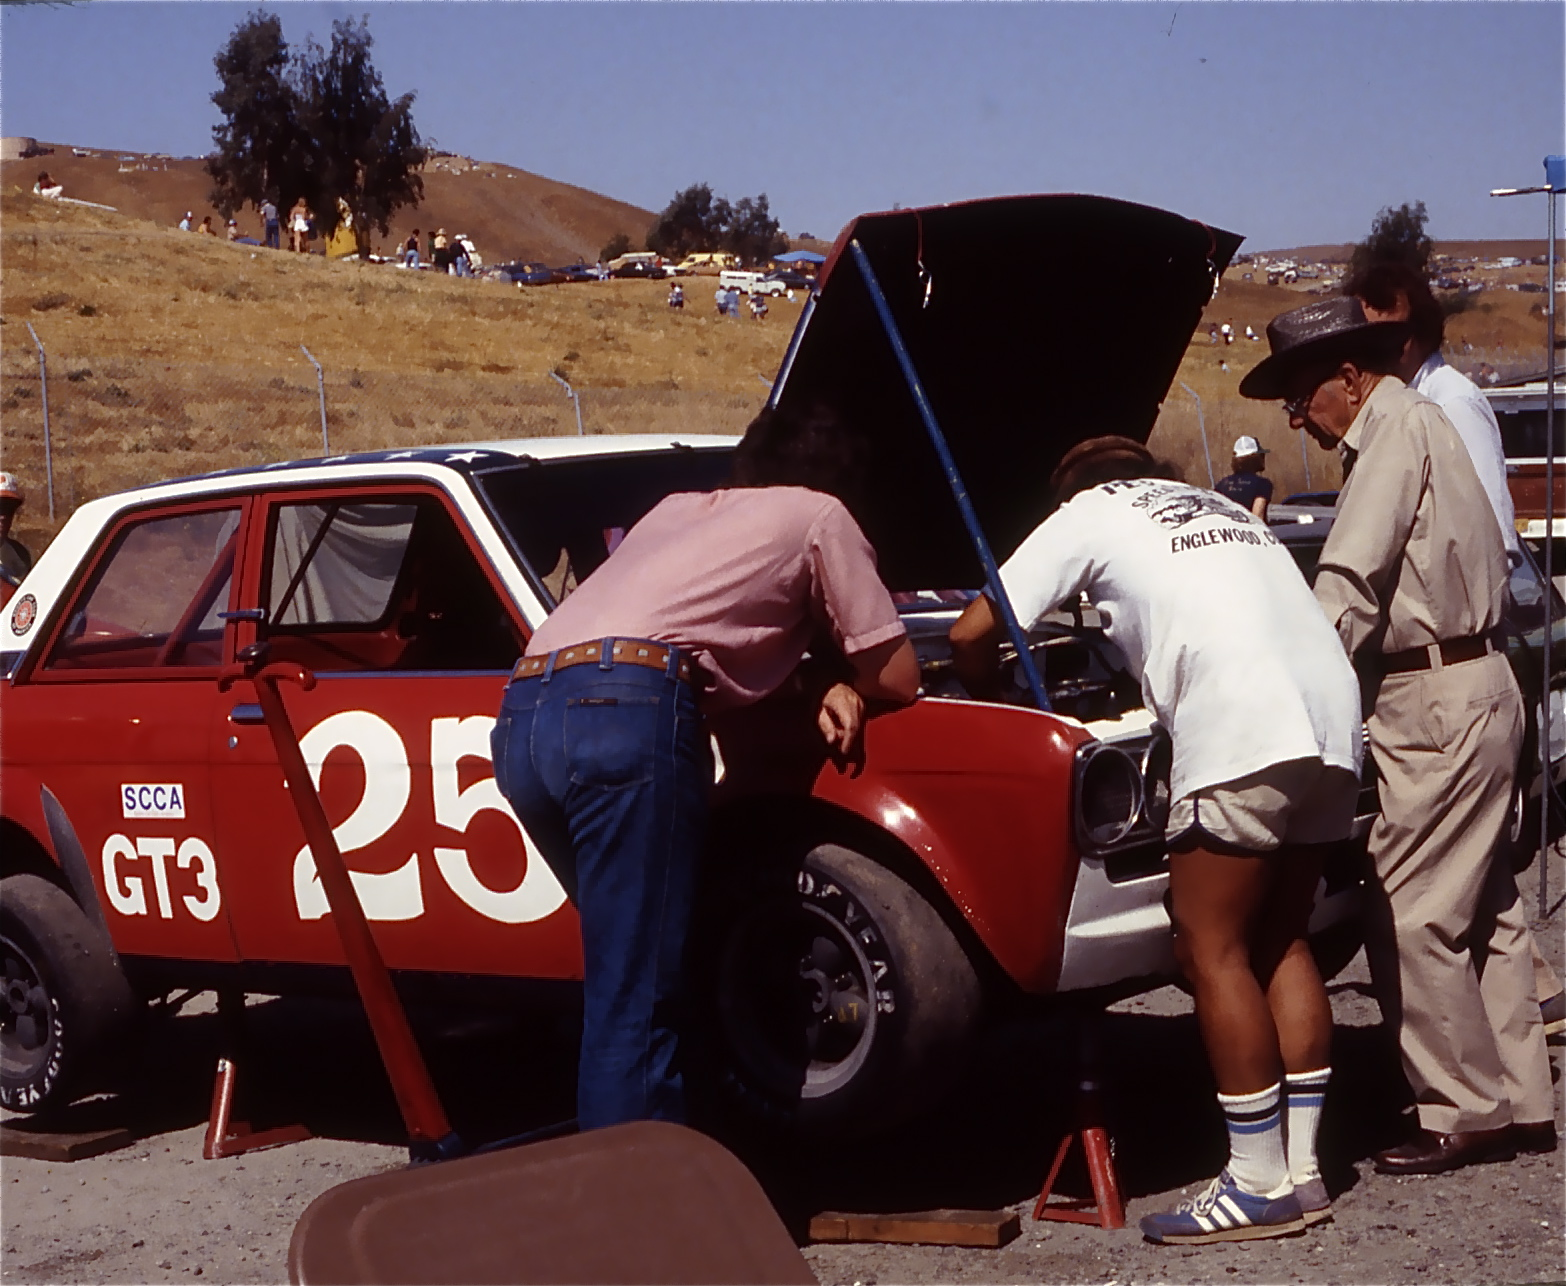 SCCA GT3 1981 Sears Point 4 Hour Enduro.